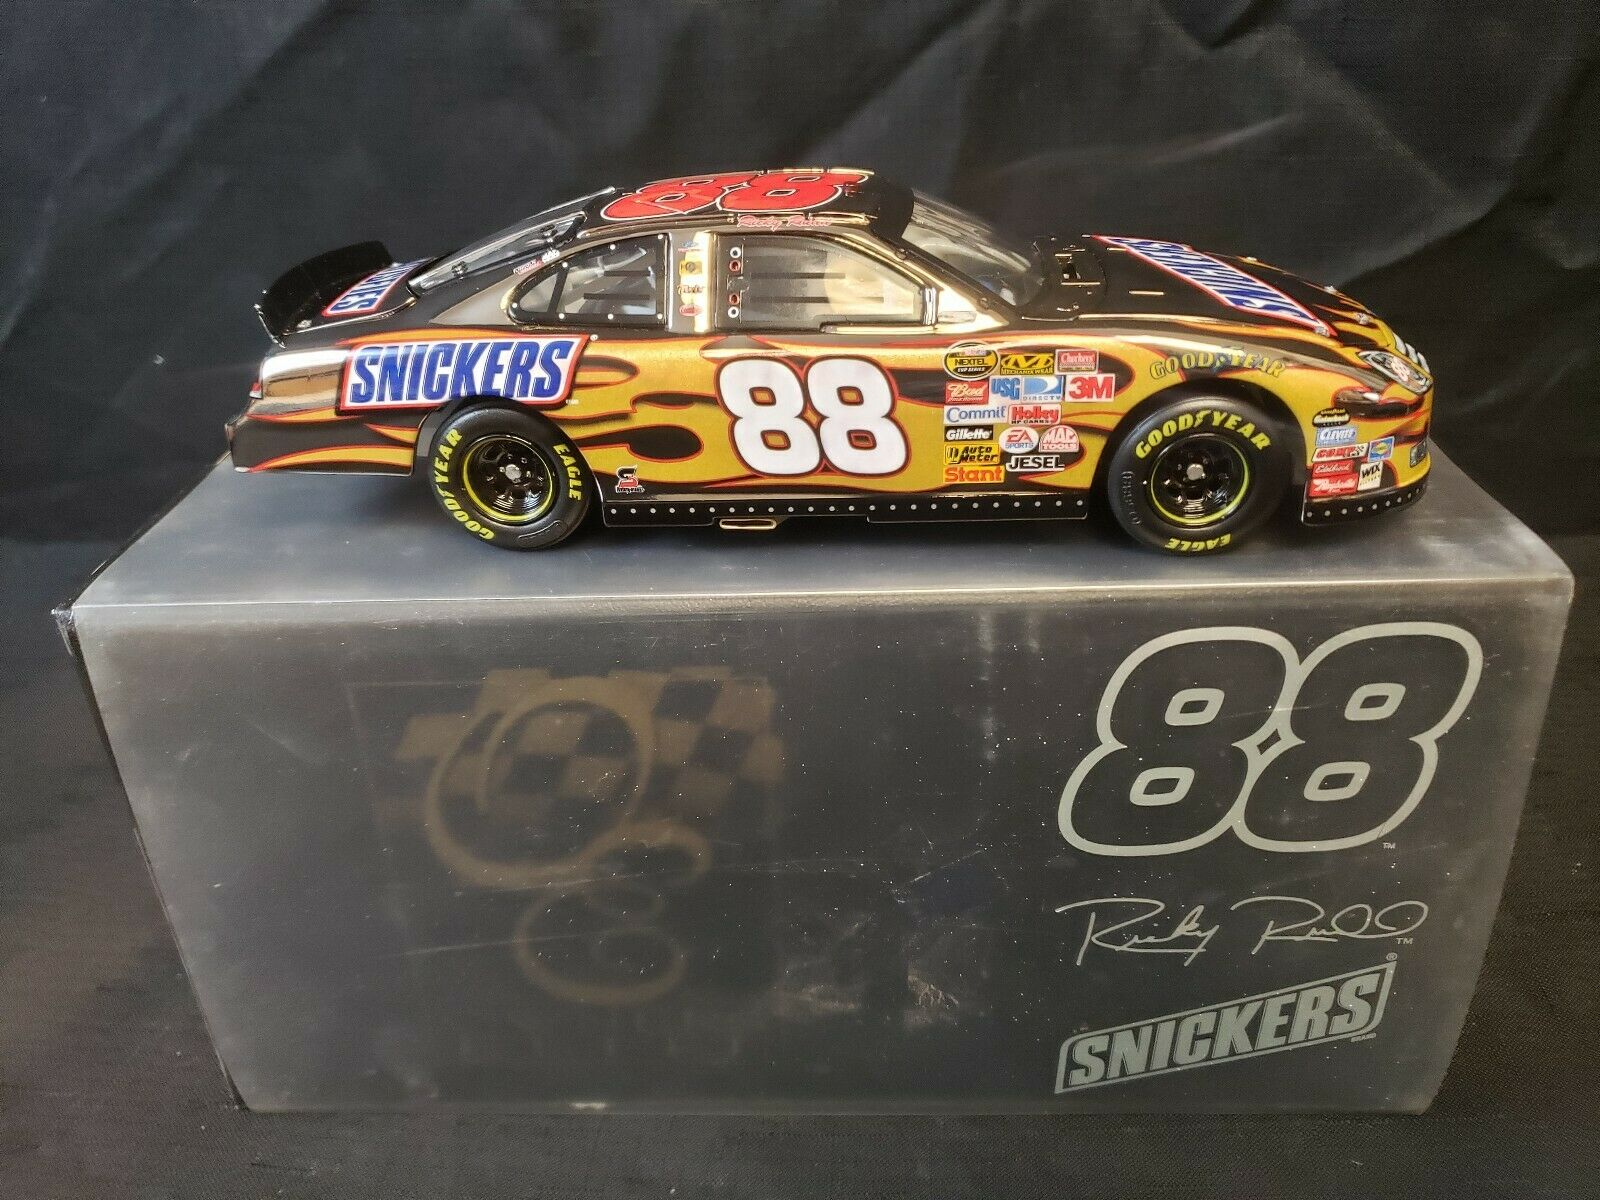 Ricky Rudd 2007 Owners Elite 1 24 White gold Ford Fusion Snickers  88 1 of 100